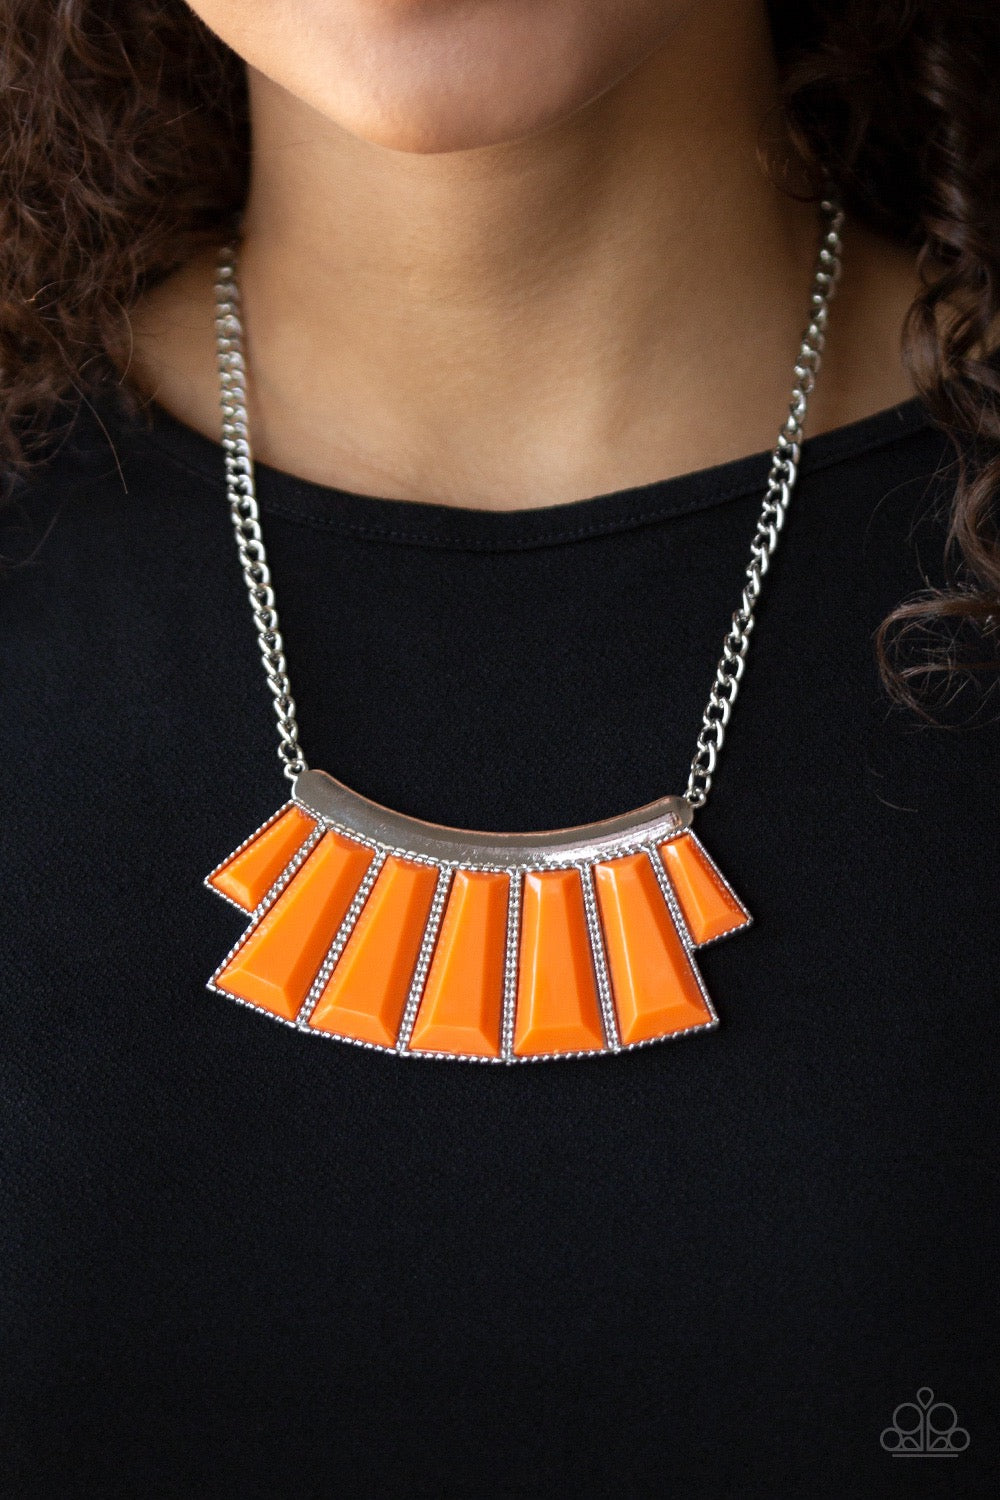 Glamour Goddess - Orange Necklace 65n